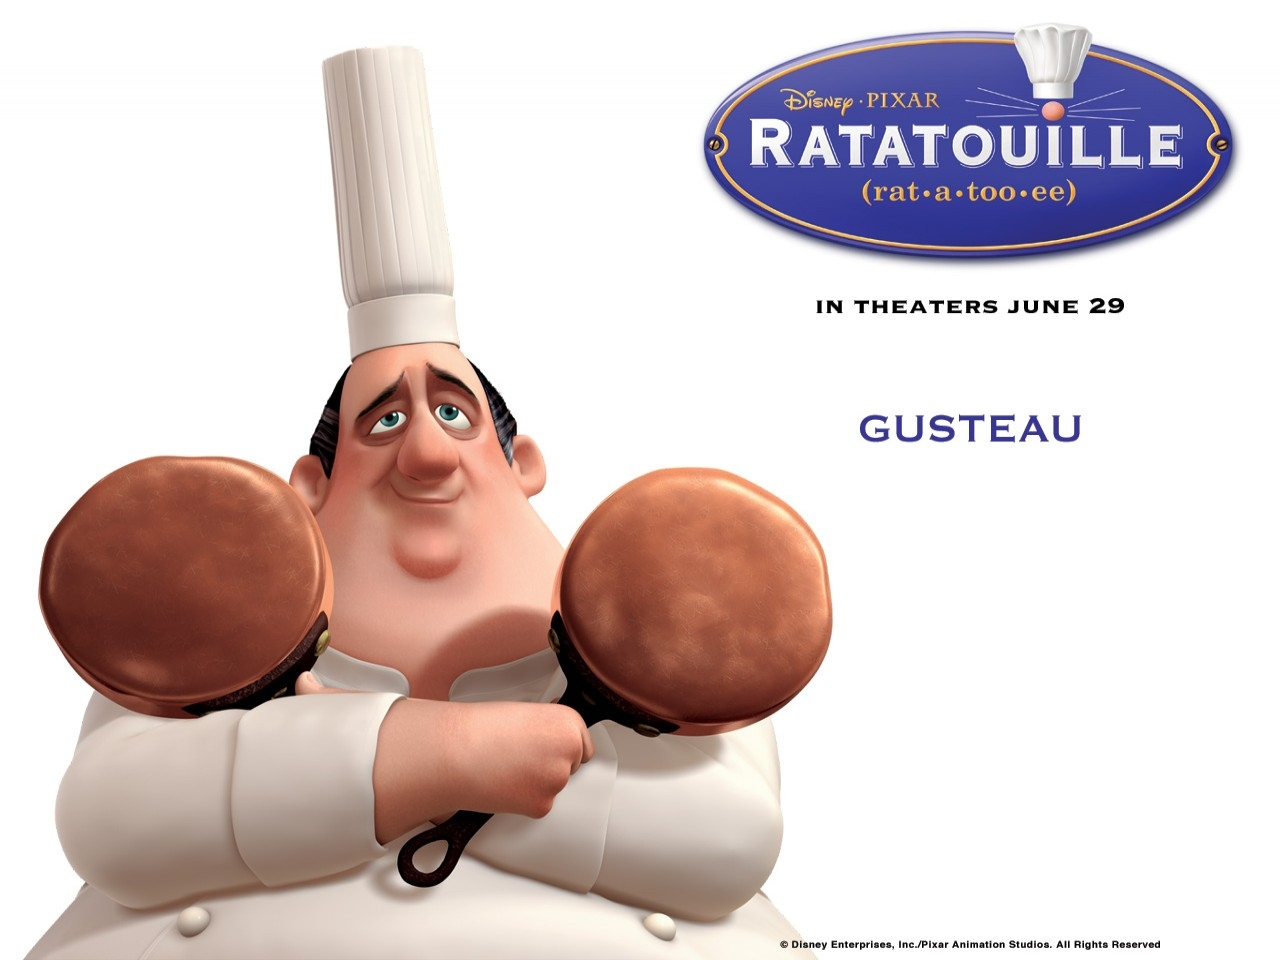 Wallpaper del film Ratatouille con il grande chef Auguste Gusteau